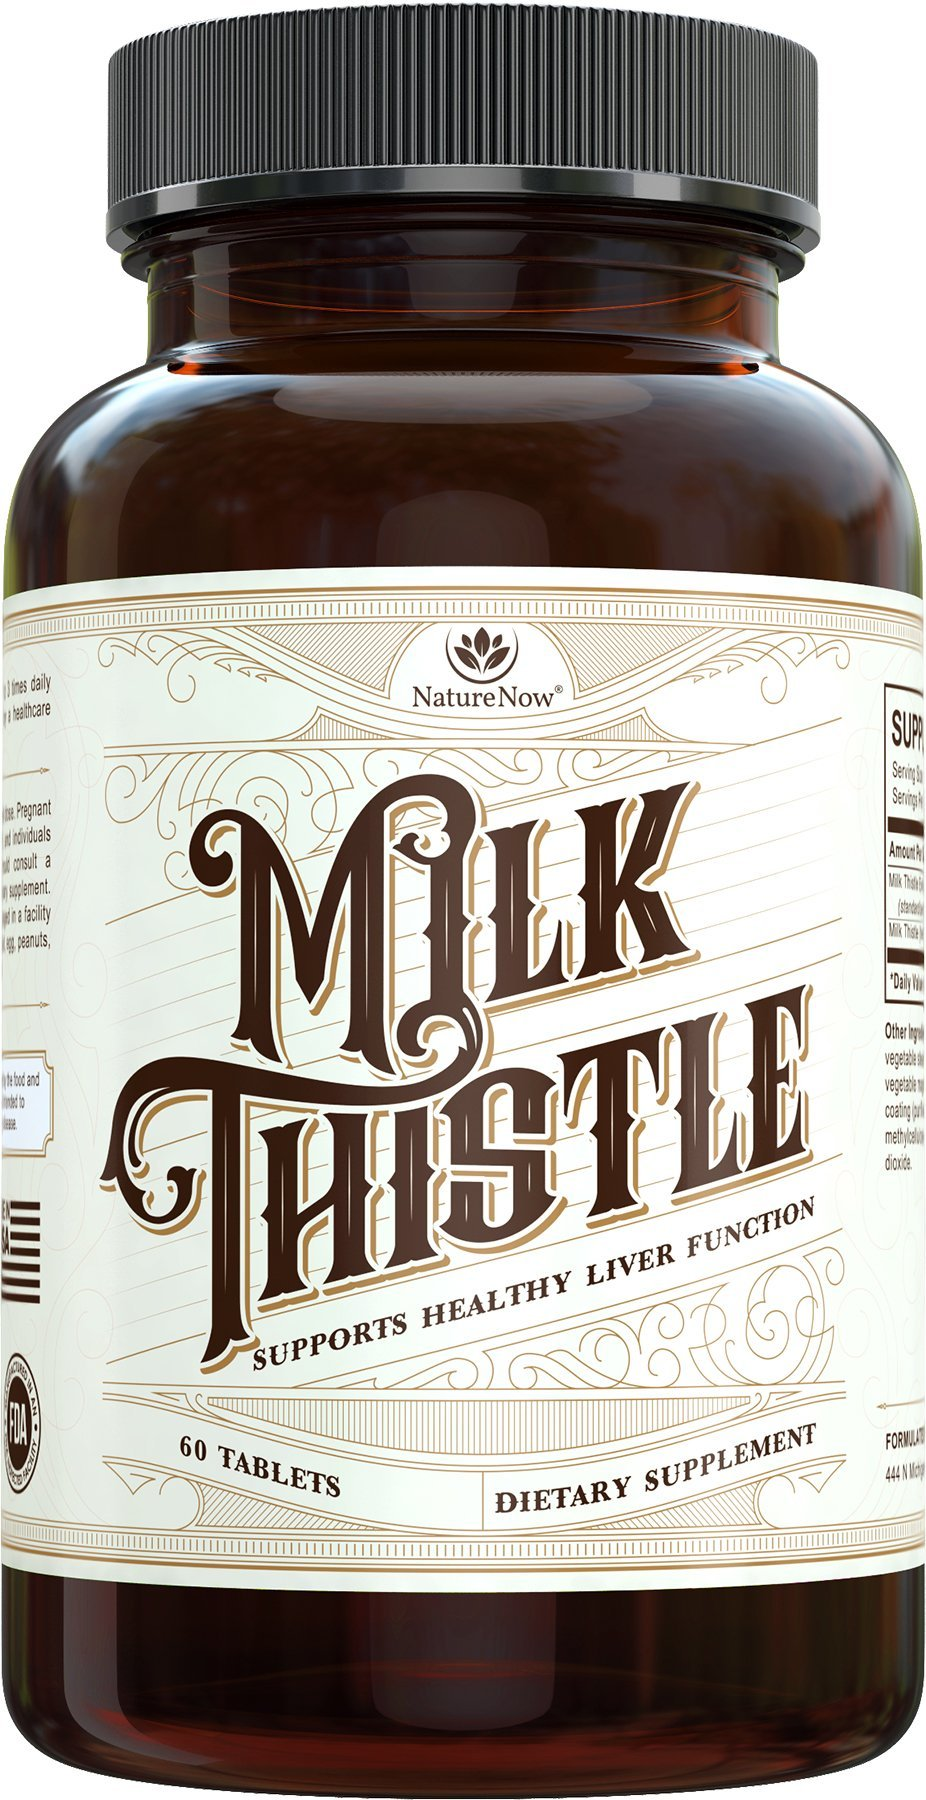 Milk Thistle Extract With Natural Silymarin Extract By NatureNow Is The #1 Best Selling Health Supplement Made In The USA For Healthy Liver Function Care, Support, Cleanse, Detox, And Hangover Helper